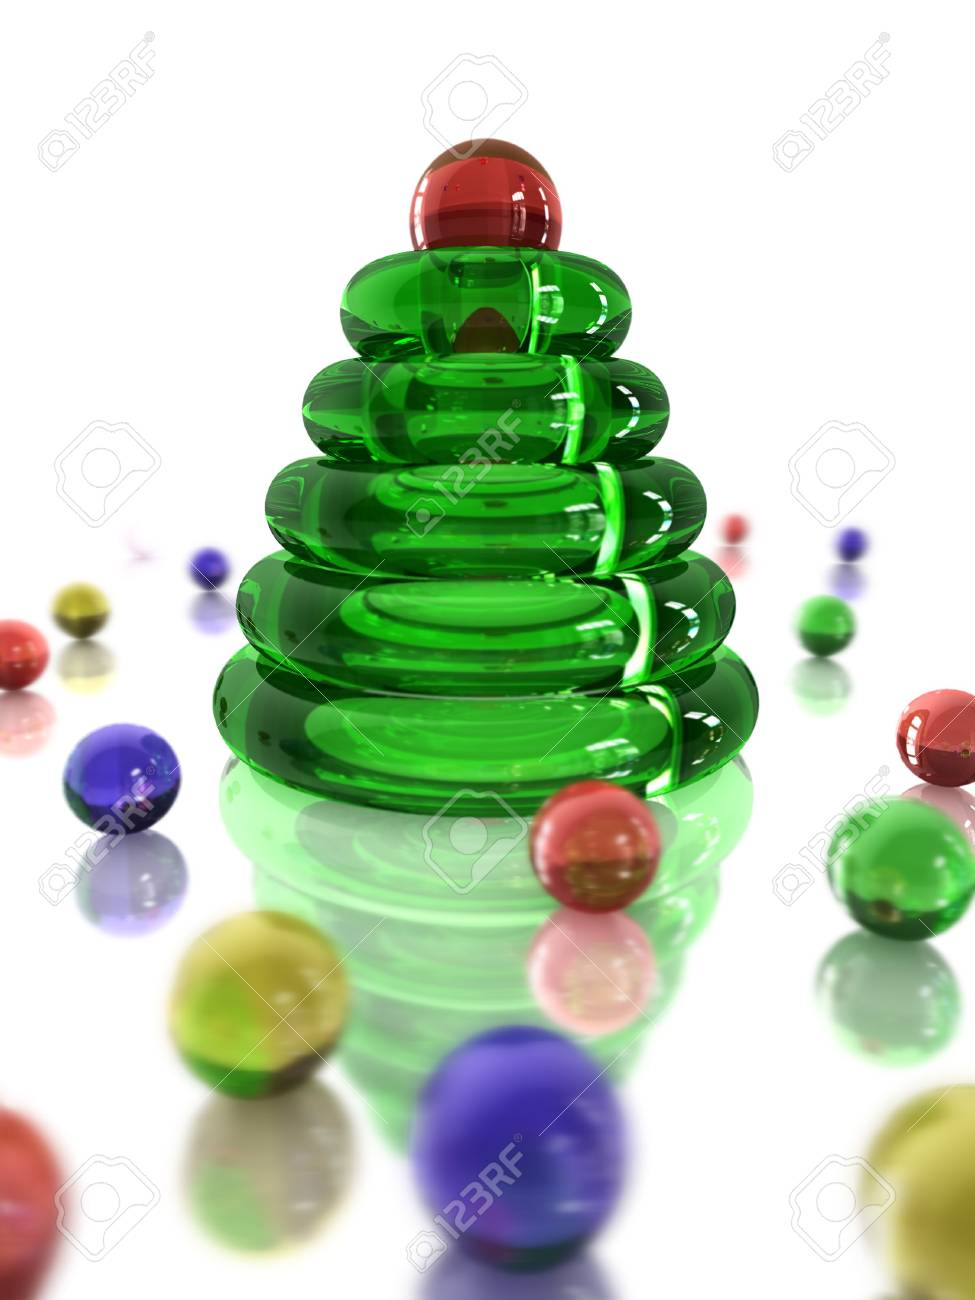 Christmas card with glassy symbolic tree and many glass beads